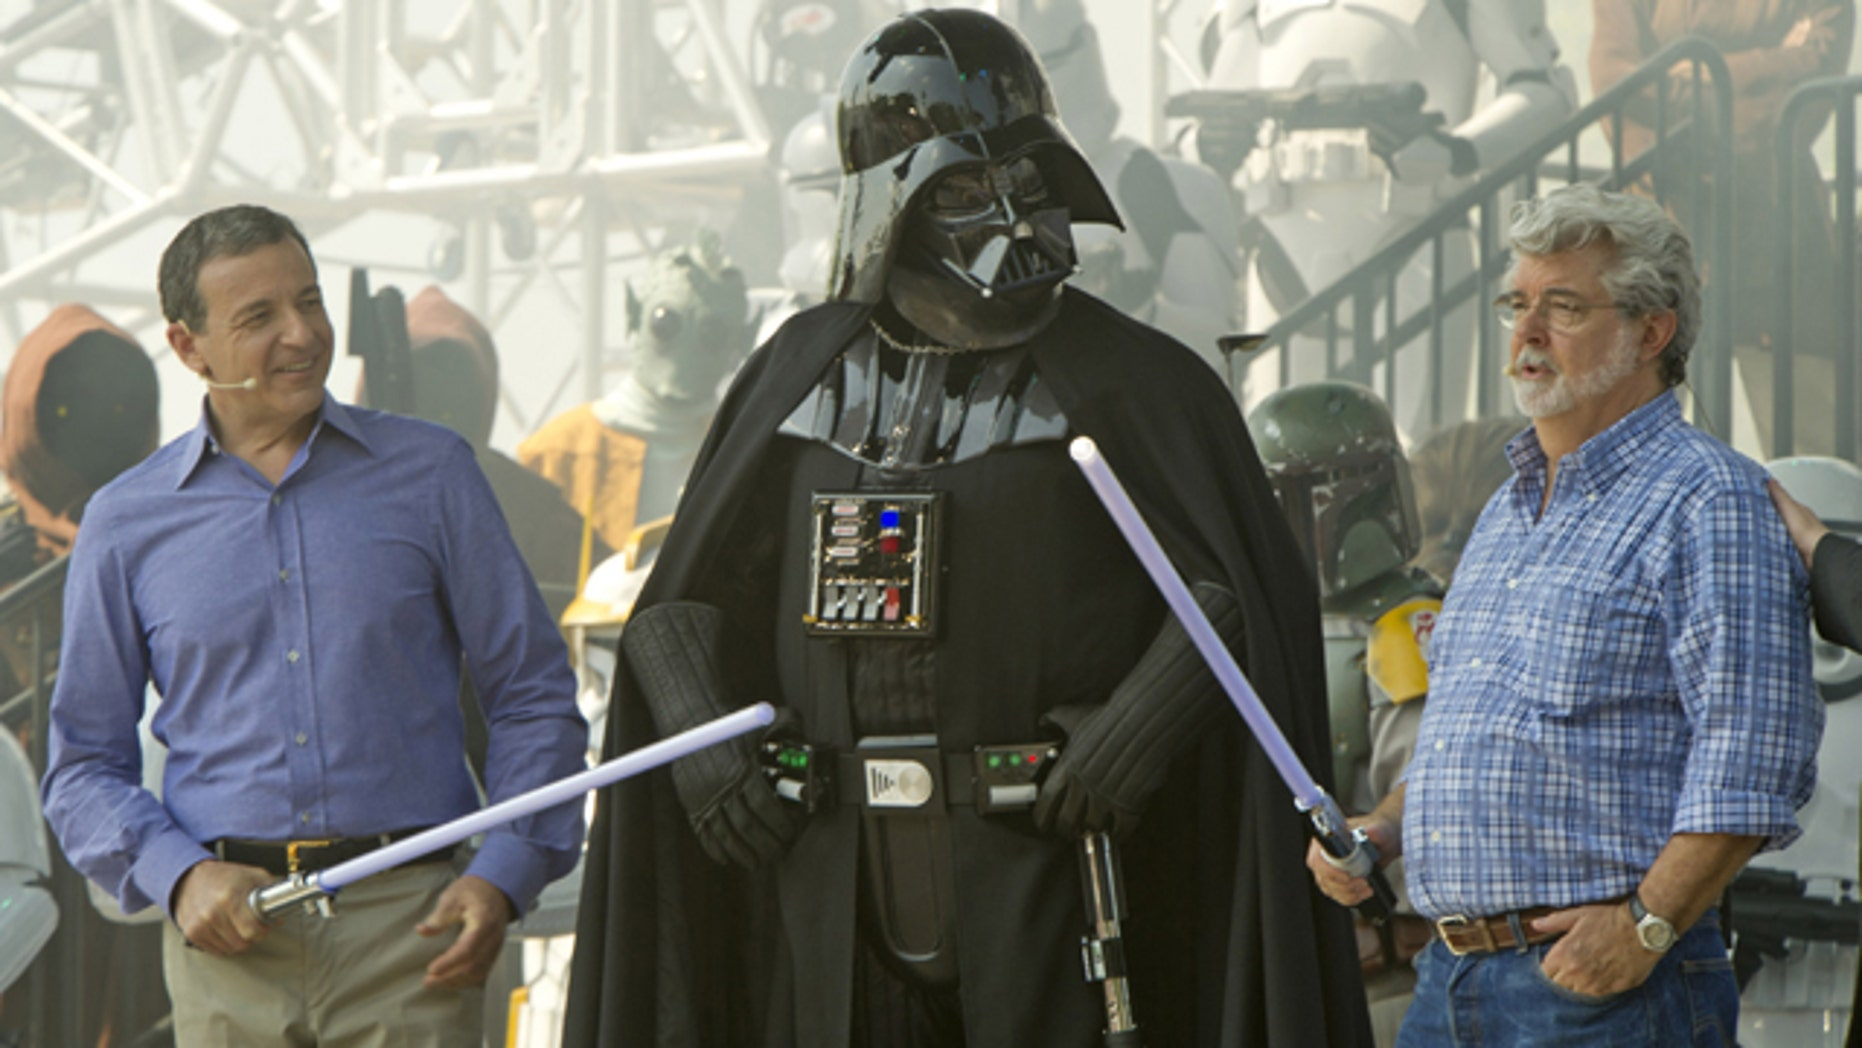 """In this publicity image released by Disney, Walt Disney Co. president and CEO Bob Iger, left, and """"Star Wars"""" creator George Lucas, right, flank """"Star Wars"""" character Darth Vadar during grand opening ceremonies for Star Tours - The Adventures Continue, a new 3-D attraction based on the films  in Disney's Hollywood Studios theme park in Lake Buena Vista, Fla., Friday, May 20, 2011.   (AP Photo/Disney, Kent Phillips)"""